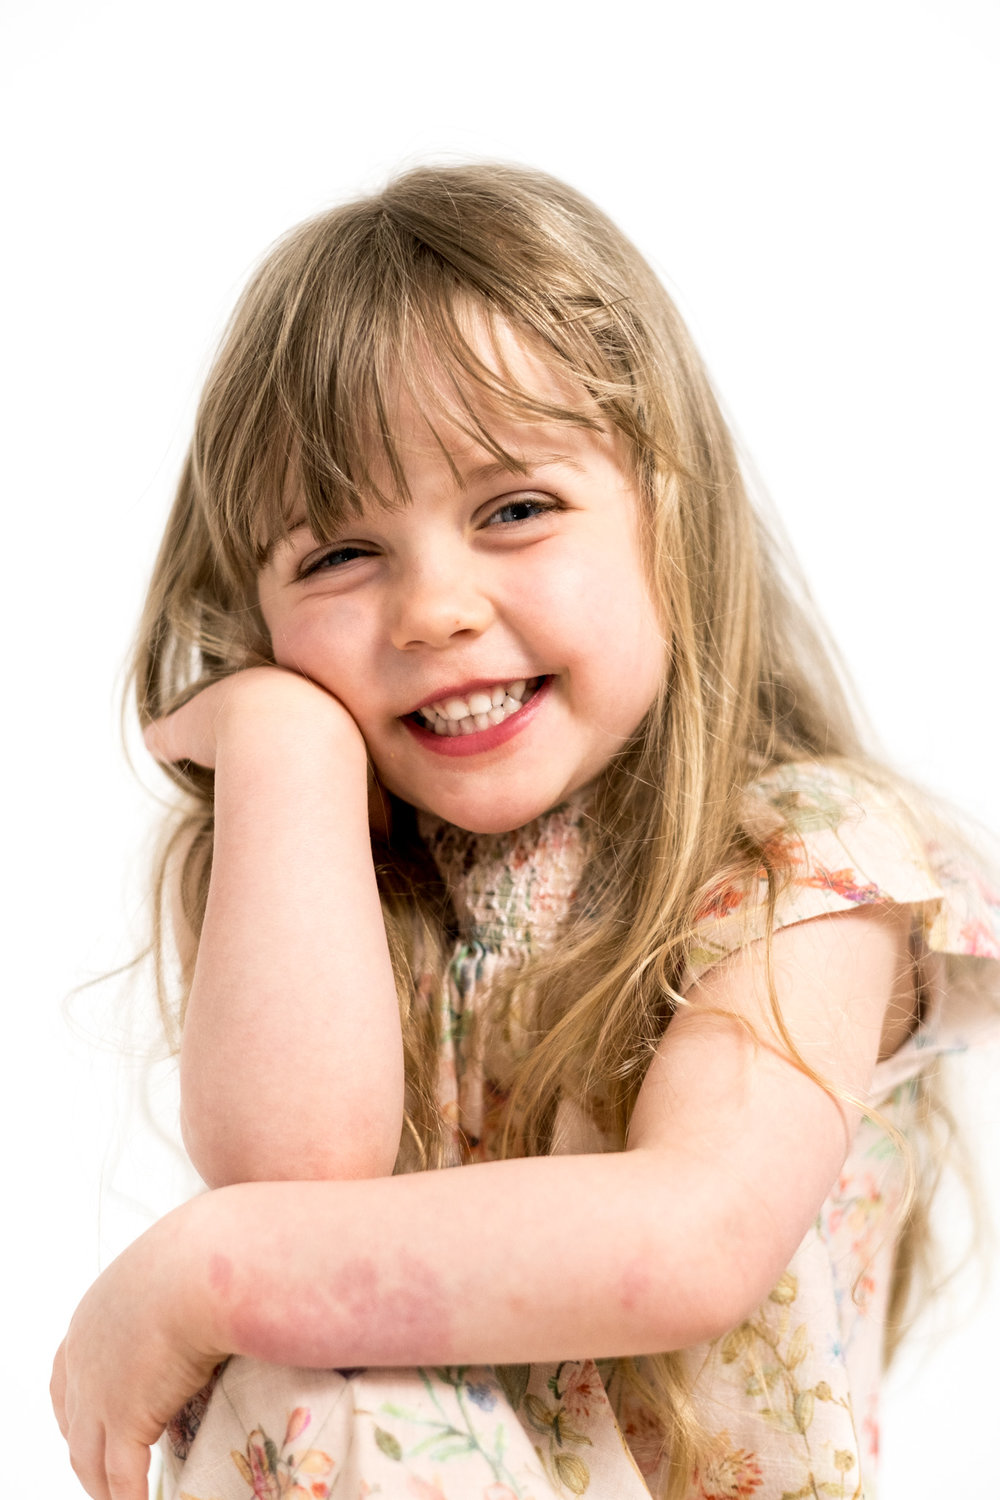 Childrens portrait Photographer